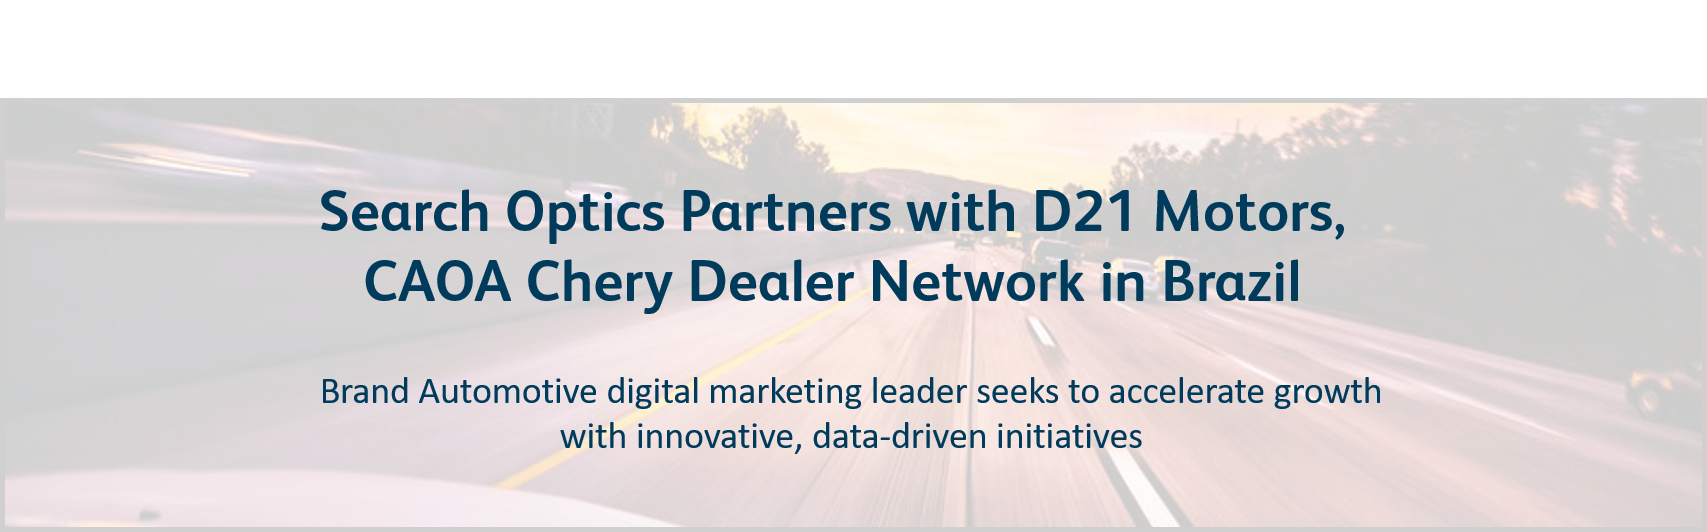 Search Optics Selected to Optimize Digital Marketing for D21 Motors, CAOA Chery Dealer Network in Brazil